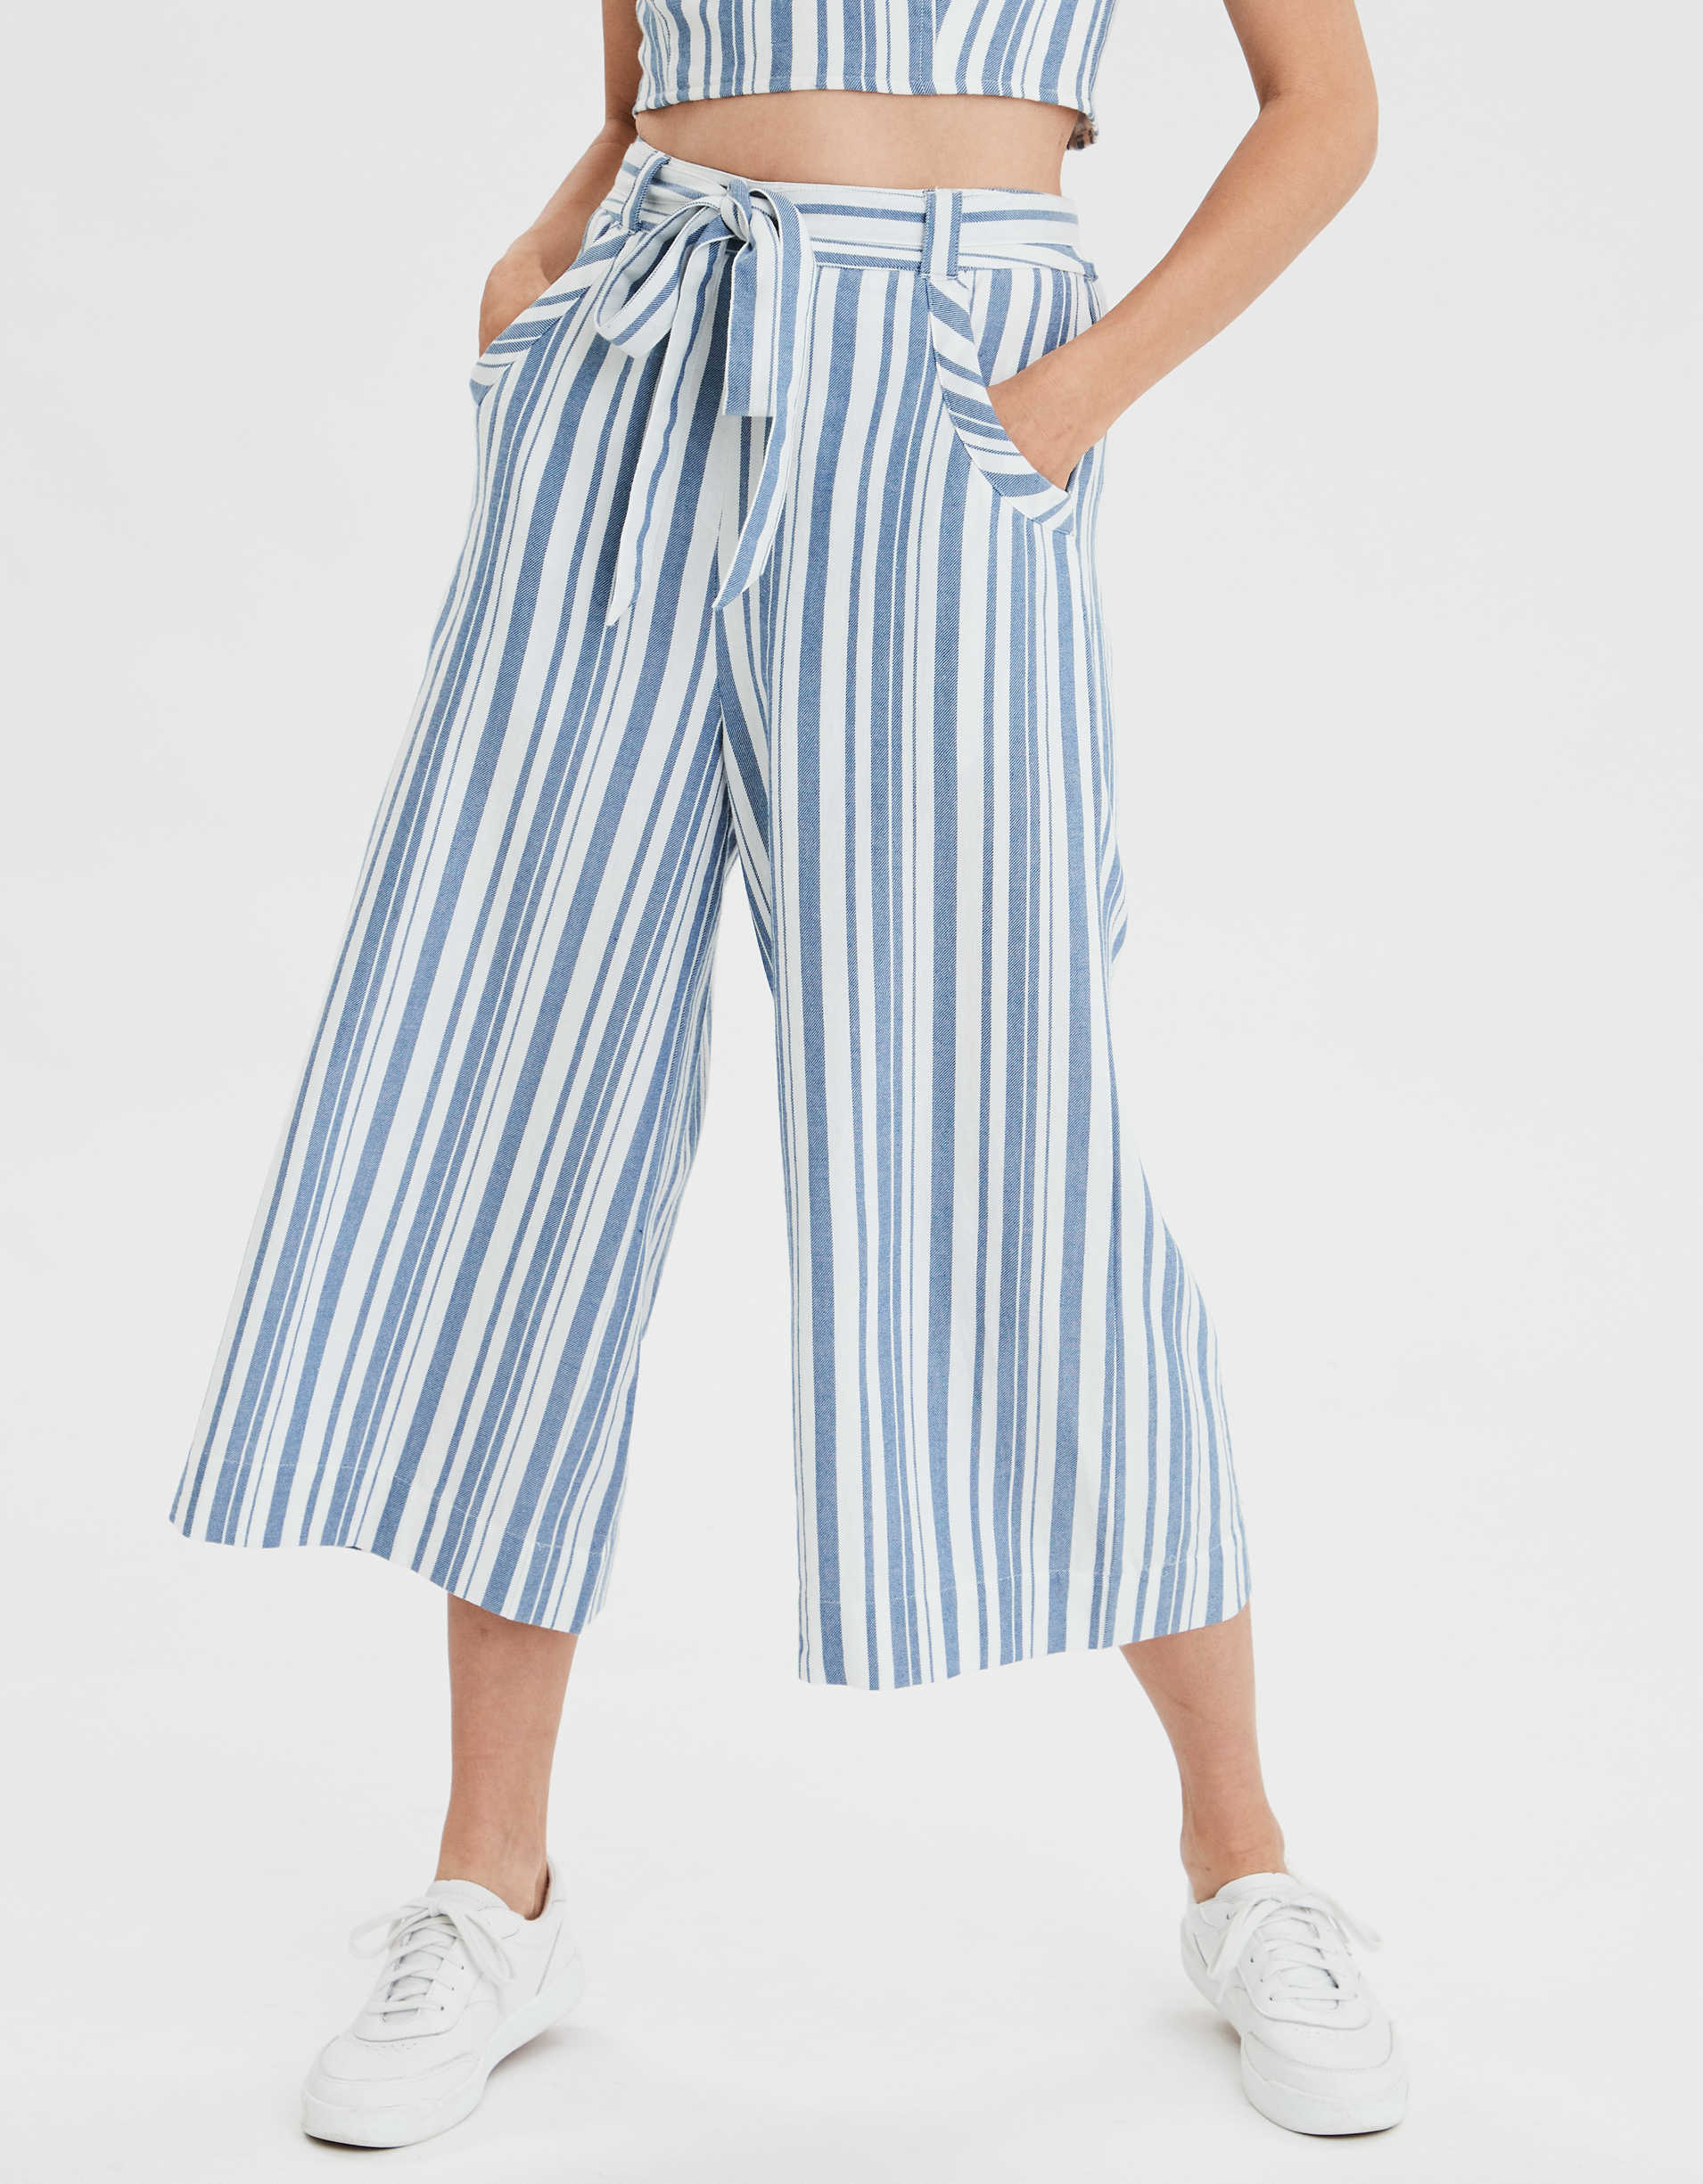 AE High-Waisted Striped Culotte